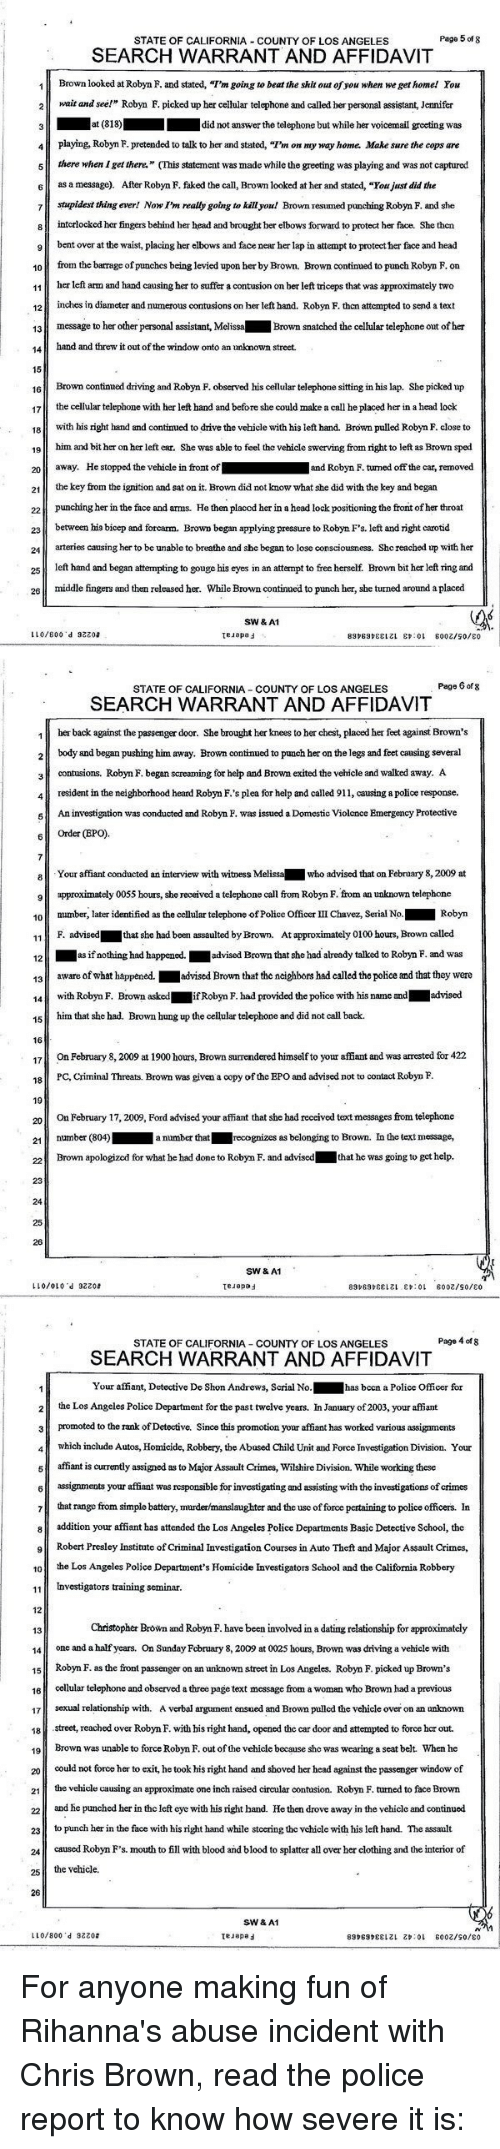 """affidavit: STATE OF CALIFORNIA COUNTY OF LOS ANGELES  Page 5 of 8  SEARCH WARRANT AND AFFIDAVIT  1 Brown looked atRobyn F. and stated, """"I'm going to beat the shit out of you when wegethomel You  2 wait and see!"""" Robym F. picked up her cellular telephone and called her personal assistant, Jennifer  3 at (818)  did not answer the telephone but while her voicemail greeting was  4 playing, Robym F. pretended to talk to her and stated, """"Pn on my way home. Make sure the cops are  5 there when get there."""" (This statement was made while the greeting was playing and was not captured  6 as a message). After Robyn F. faked the can, Brown looked at her and stated, """"Youjust did the  7 stupidest thing ever! Now Im really going to killyonl Brown resumed punching Robyn F. and she  8 intcrlocked her fingers behind her head and brought ber elbows forward to protect her face. She then  9 bent over at the waist, placing her elbows and face near her lap in attempt to protect her face and head  10  from the barrage of punchcs being levied upon her by Brown. Brown continued to punch Robyn F. on  11  her left arm and hand causing her to suffer a contusion on ber left triceps that was approximately two  12  inches in diameter and numerous contusions on ber left hand. Robyn F. thcn attcmpted to send a text  13 message to her other personal assistant, Melissa  Brown snatched the cellular telephone out of her  14  hand and threw it out of the window onto an unknown street.  15  16  Brown continmed driving and Robyn F. observed his cellular telephone sitting in his lap. She picked up  17  the cellular telephone with her left hand and before she could make a call he placed her in a head lock  18  with his right hand and continued to drive the vehicle with his left hand. Brown pulled Robyn F. close to  19  him and bit her on her left ear. She was able to feel the vehicle swerving from right to left as Brown sped  20 away. He stopped the vehicle in front of  and Robyn F. tumed off the car, removed"""